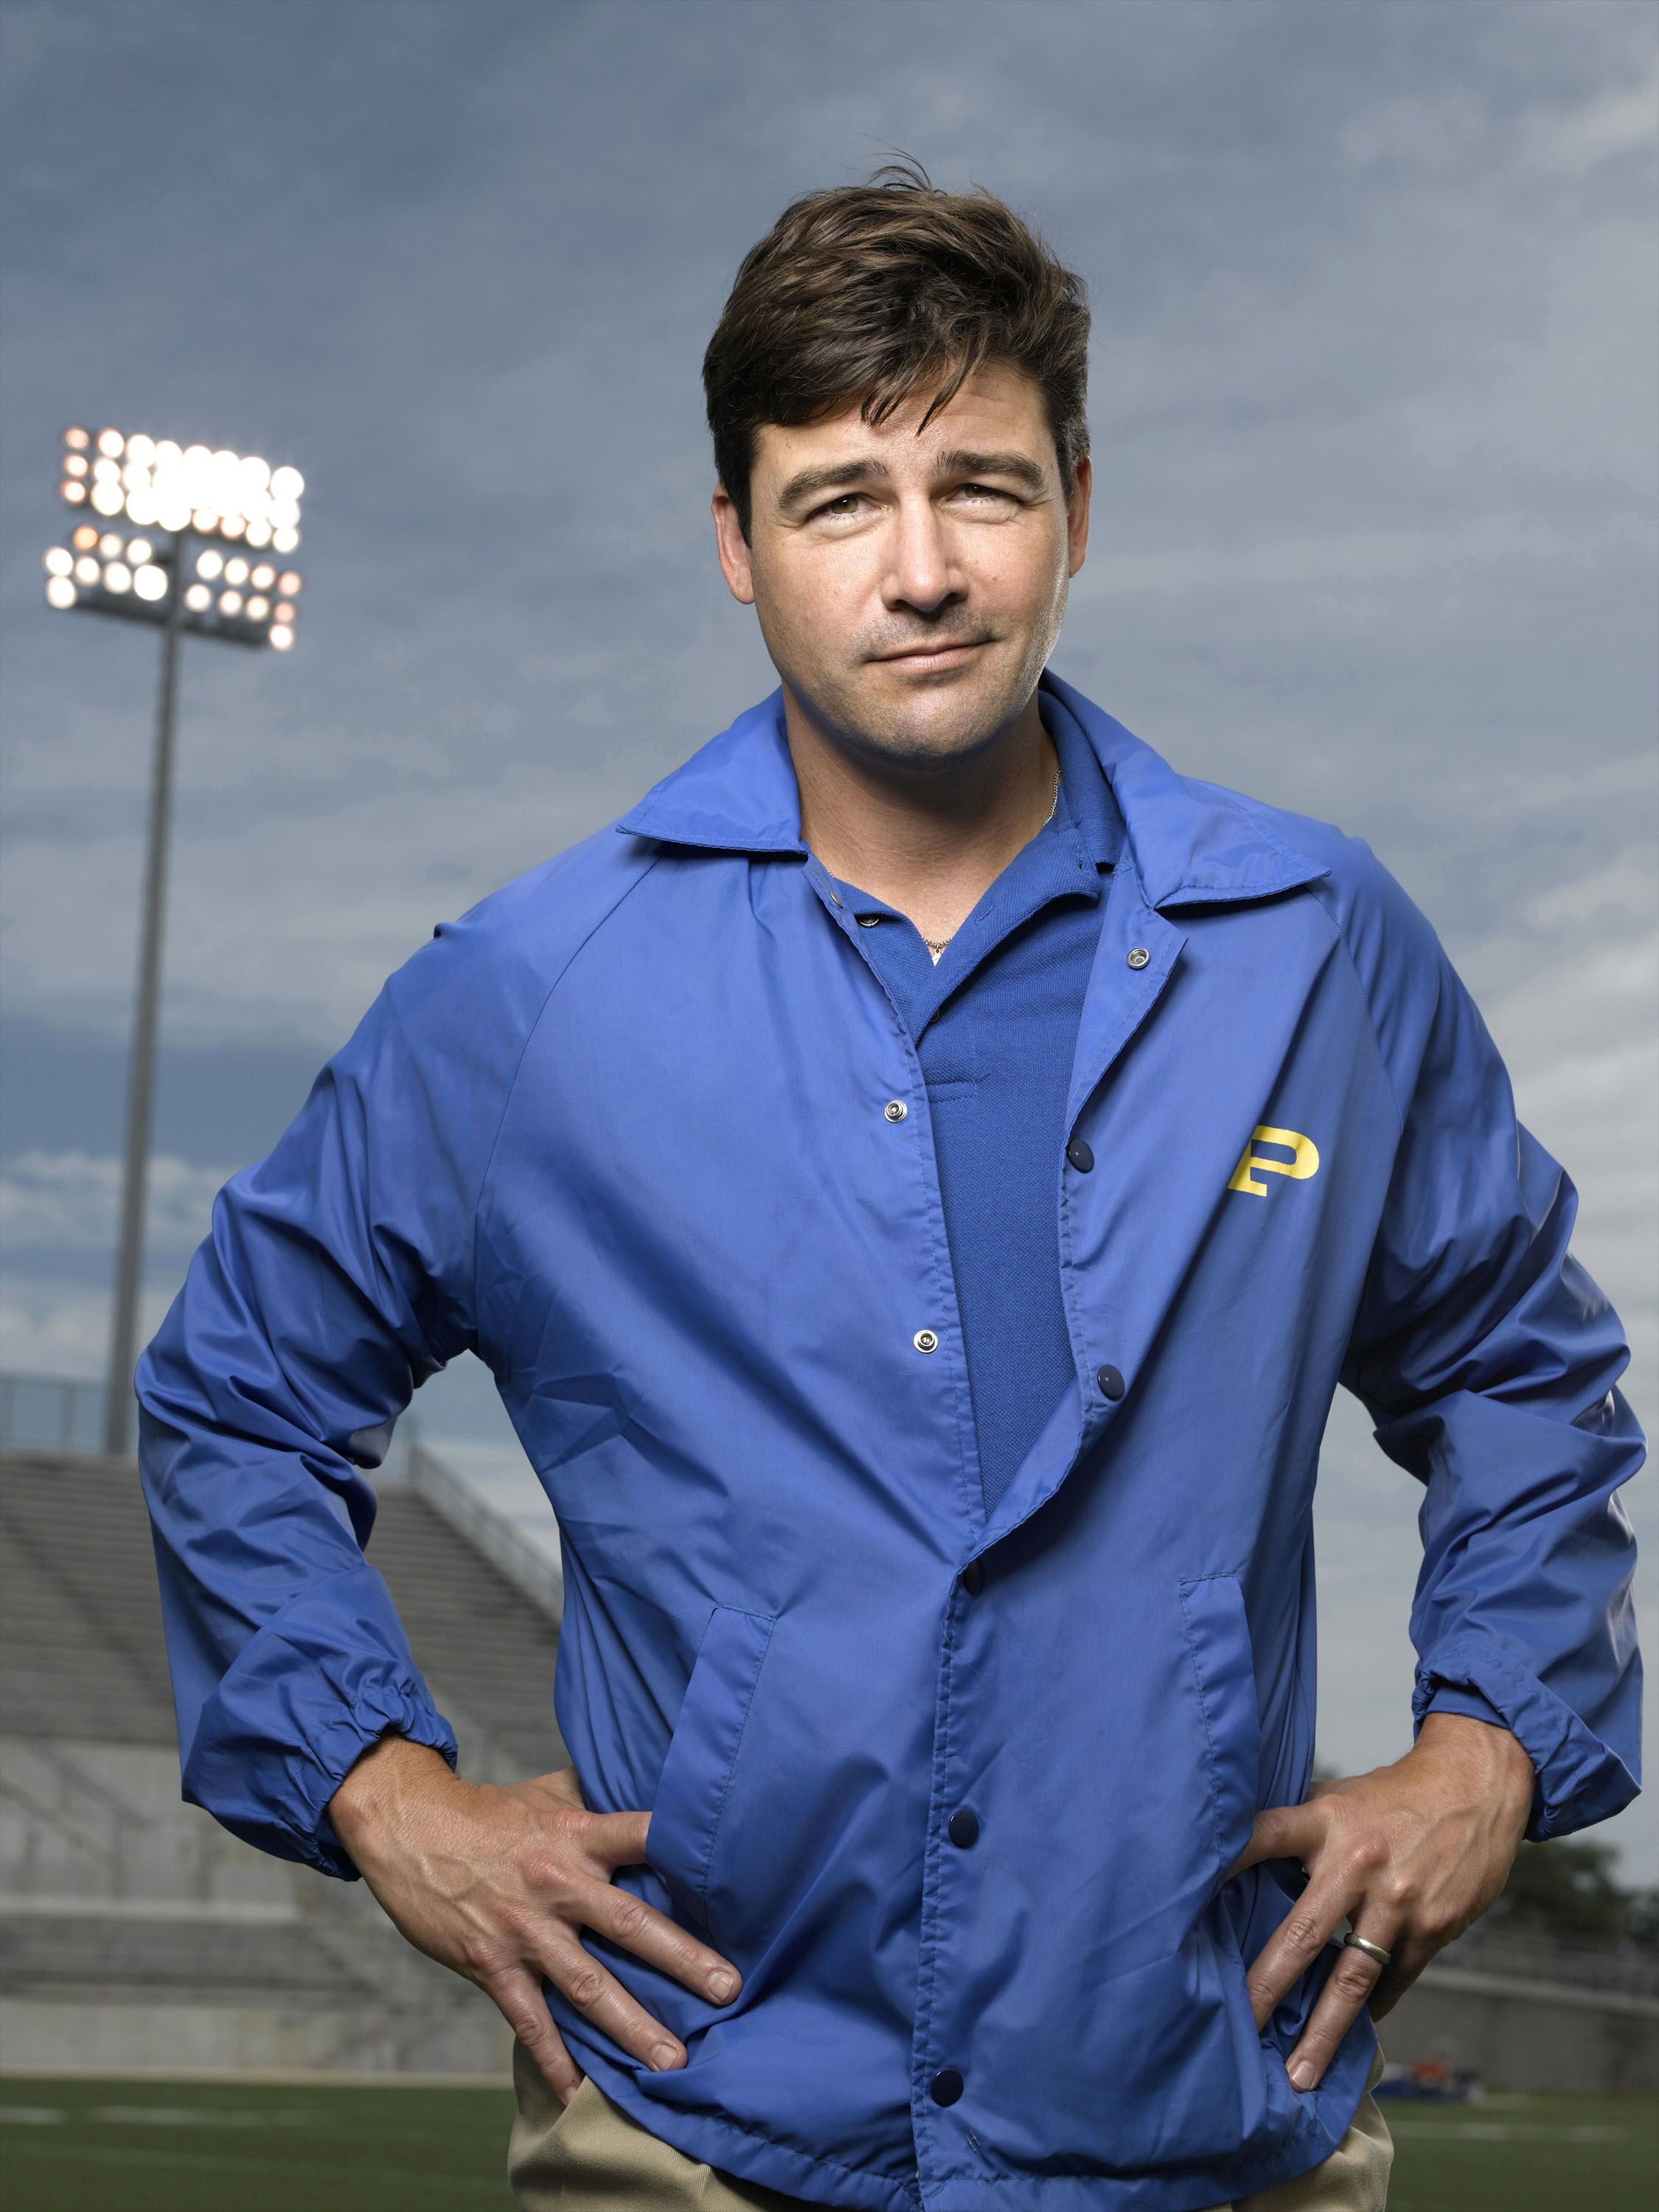 Friday Night Lights Cast Where Are They Now